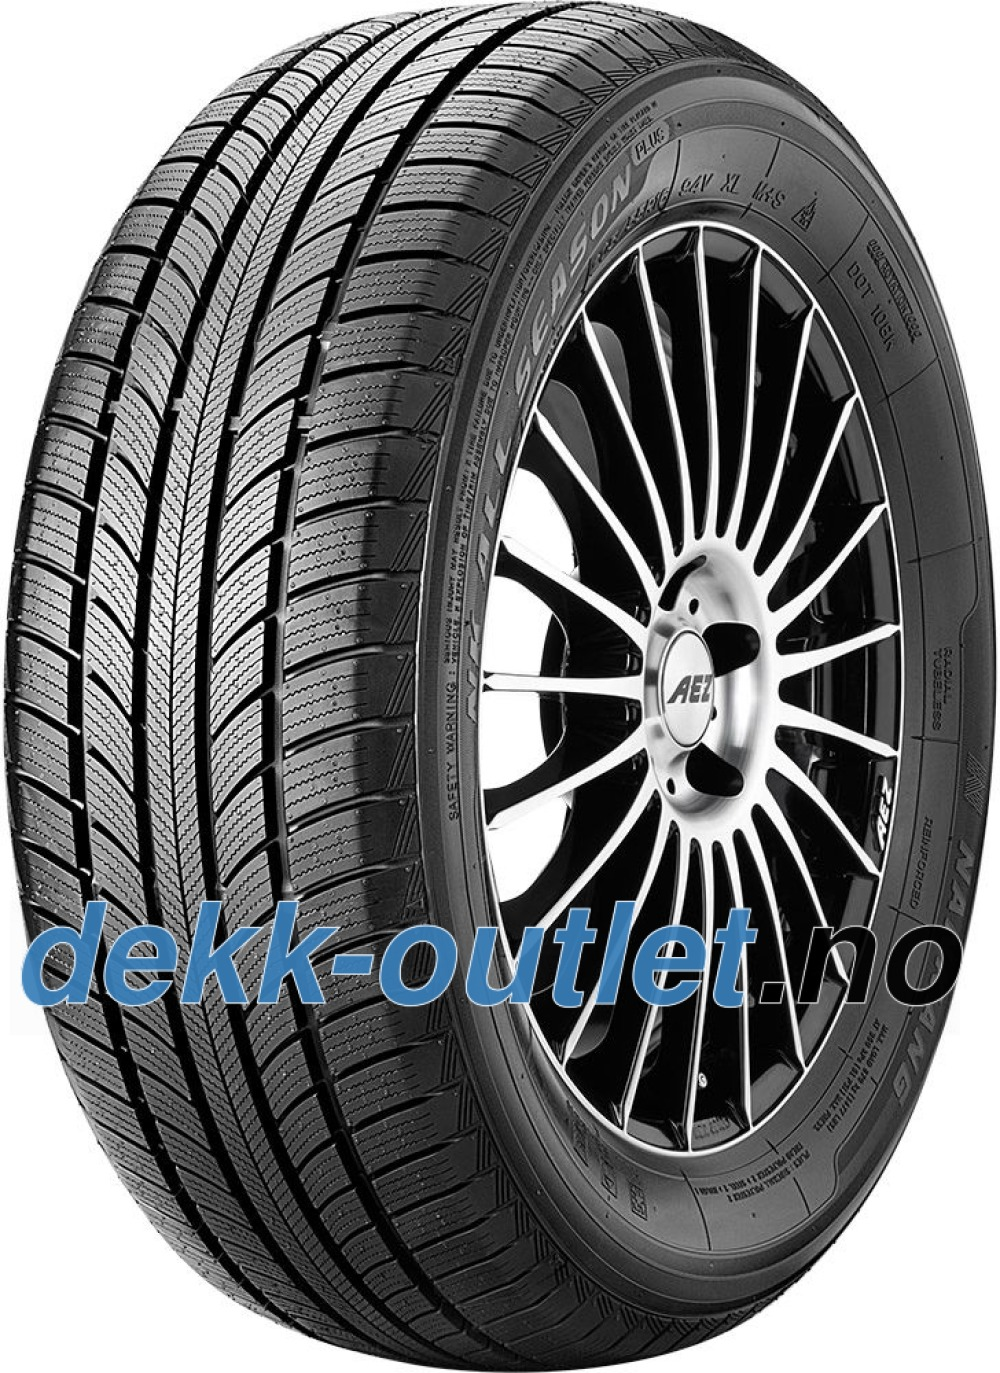 Nankang All Season Plus N-607+ ( 195/55 R16 91V XL )